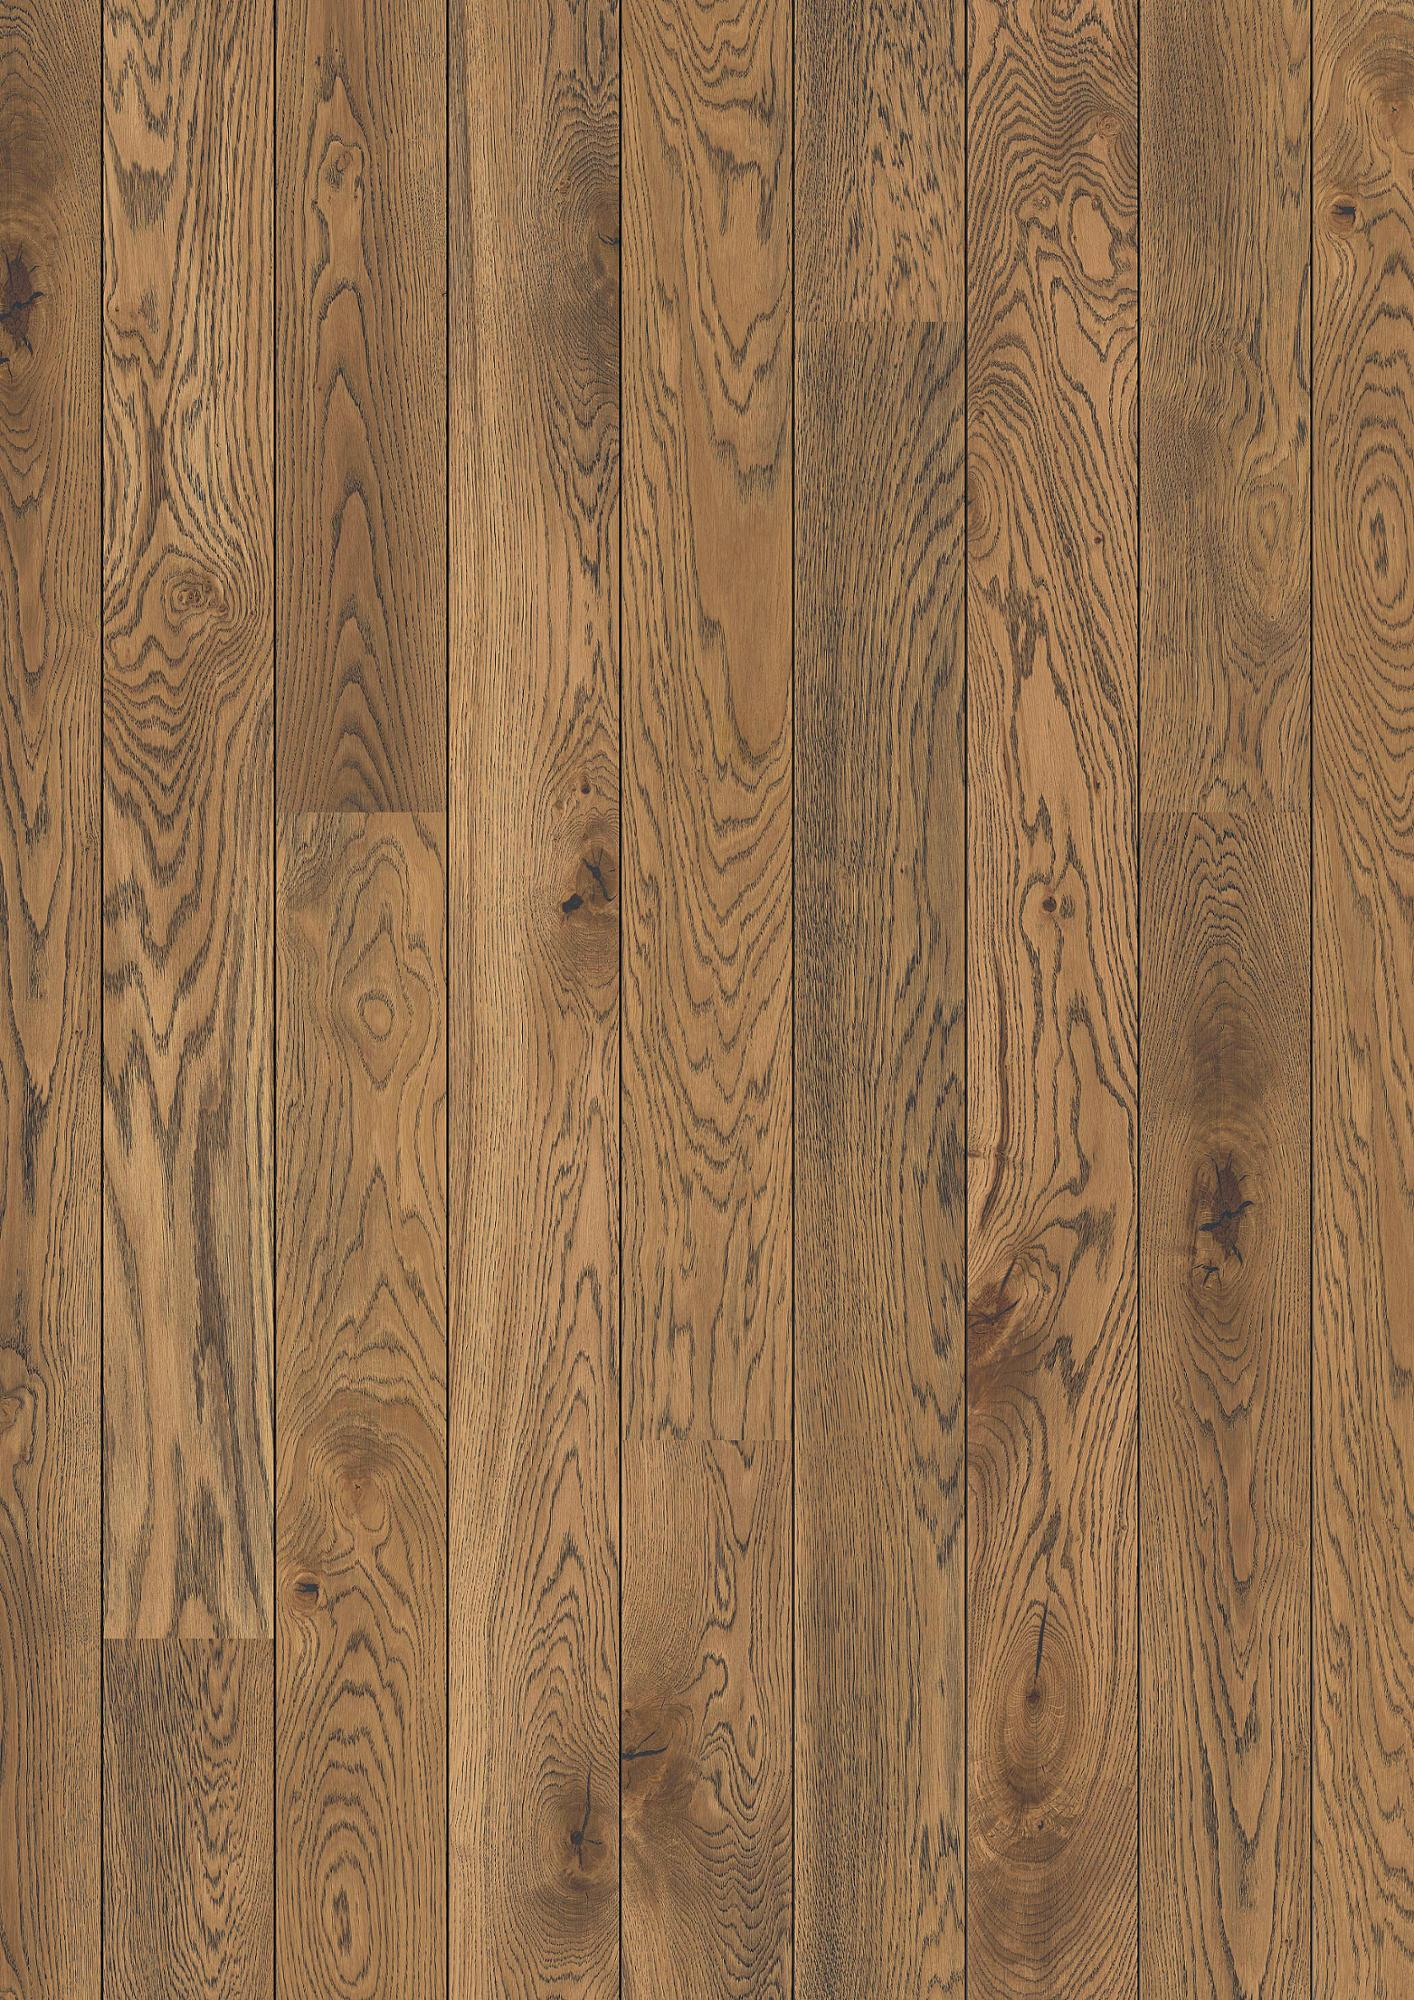 Oak Alamo, Live Natural oil, beveled 2V, Plank 138, 14x138x2200mm